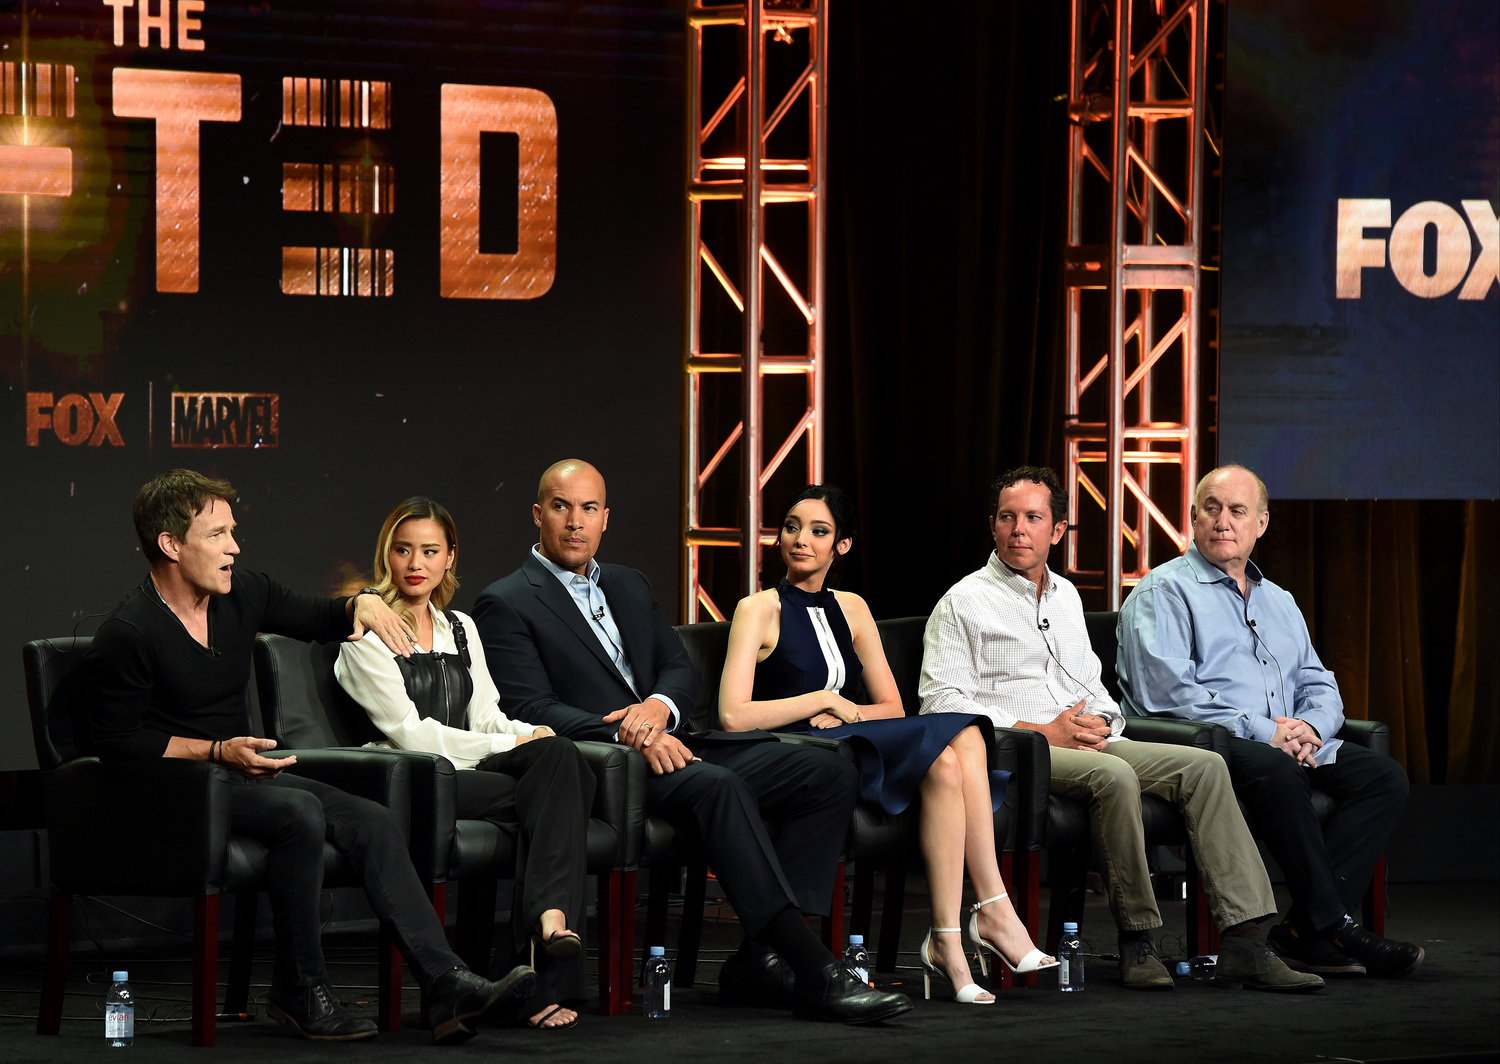 2017 FOX SUMMER TCA: L-R: THE GIFTED cast members Stephen Moyer, Jamie Chung, Coby Bell, Emma Dumont, Executive Producers Matt Nix and Jeph Loeb during THE GIFTED panel at the 2017 FOX SUMMER TCA at The Beverly Hilton Hotel, Tuesday, August 8 in Beverly Hills, CA. CR: Frank Micelotta/FOX/PictureGroup